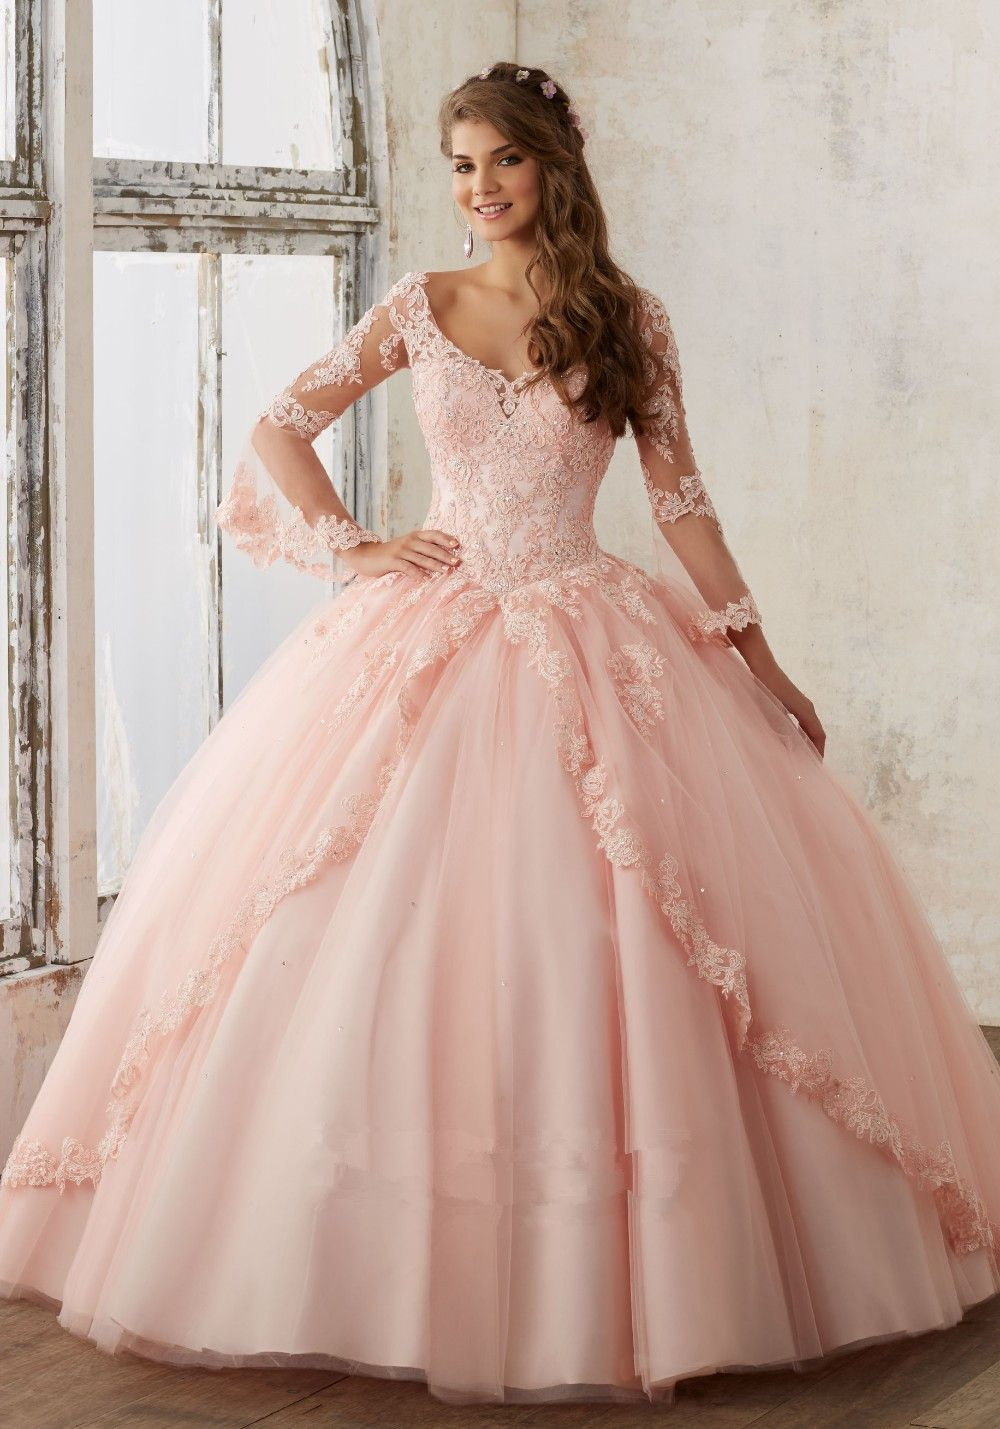 Find More Quinceanera Dresses Information about Sexy Sweetheart Full ...